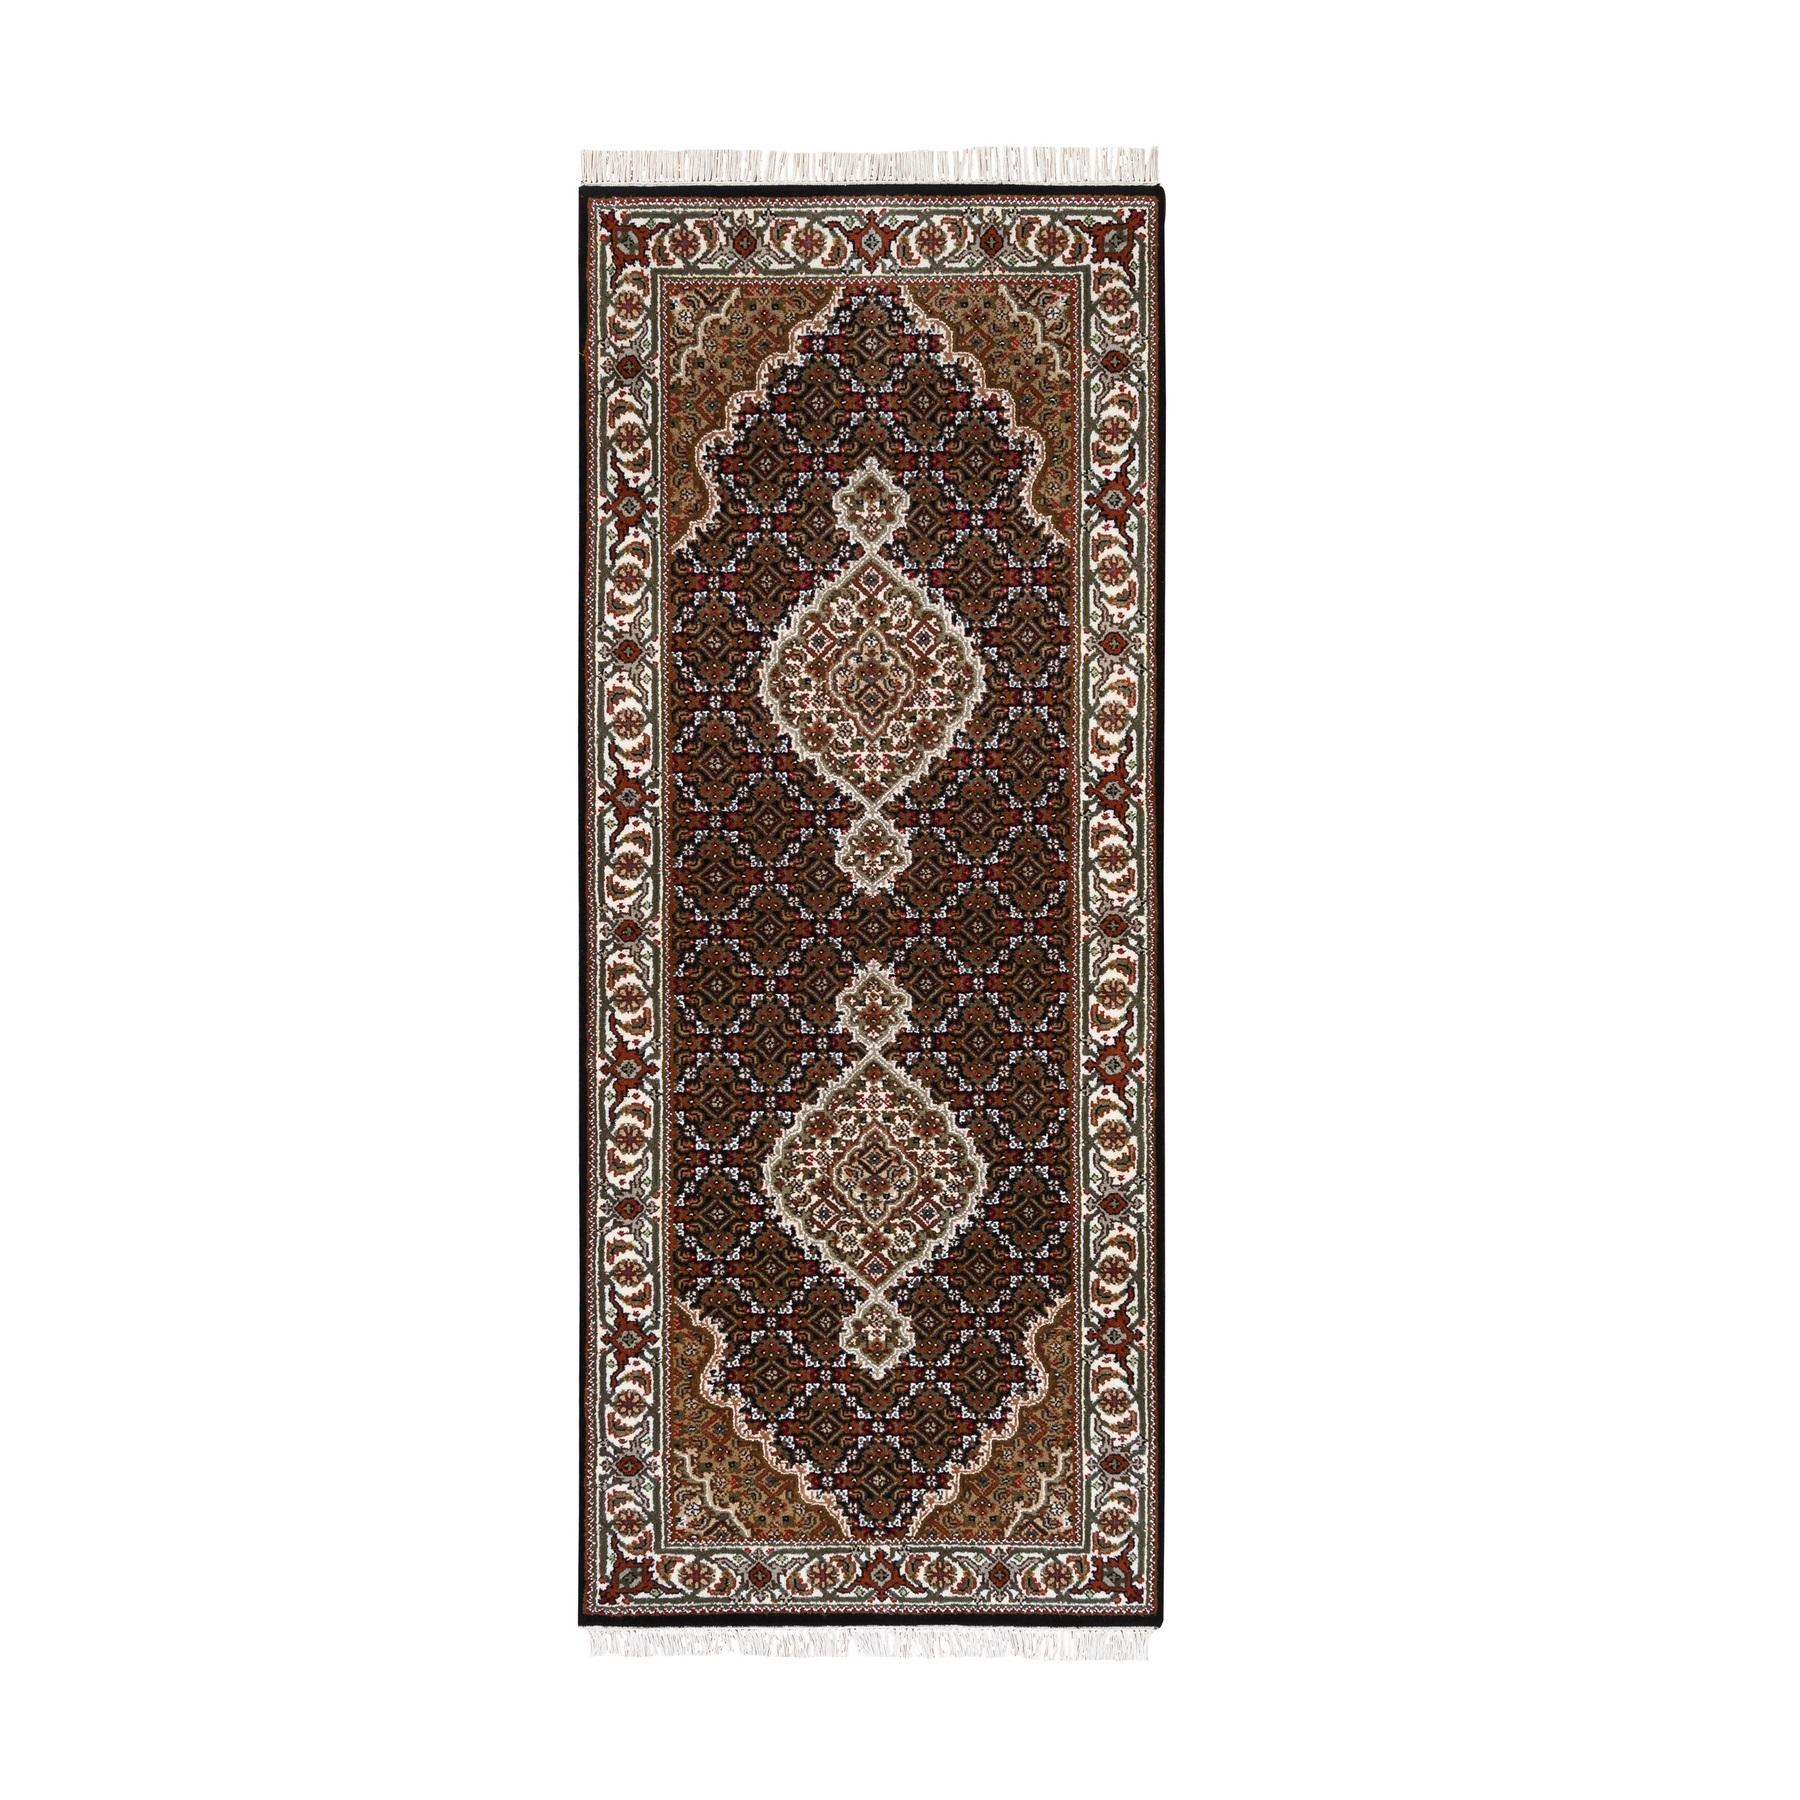 "2'8""x6'6"" Hand Woven Black Tabriz Mahi Fish Medallion Design Wool And Silk Oriental Runner Rug"